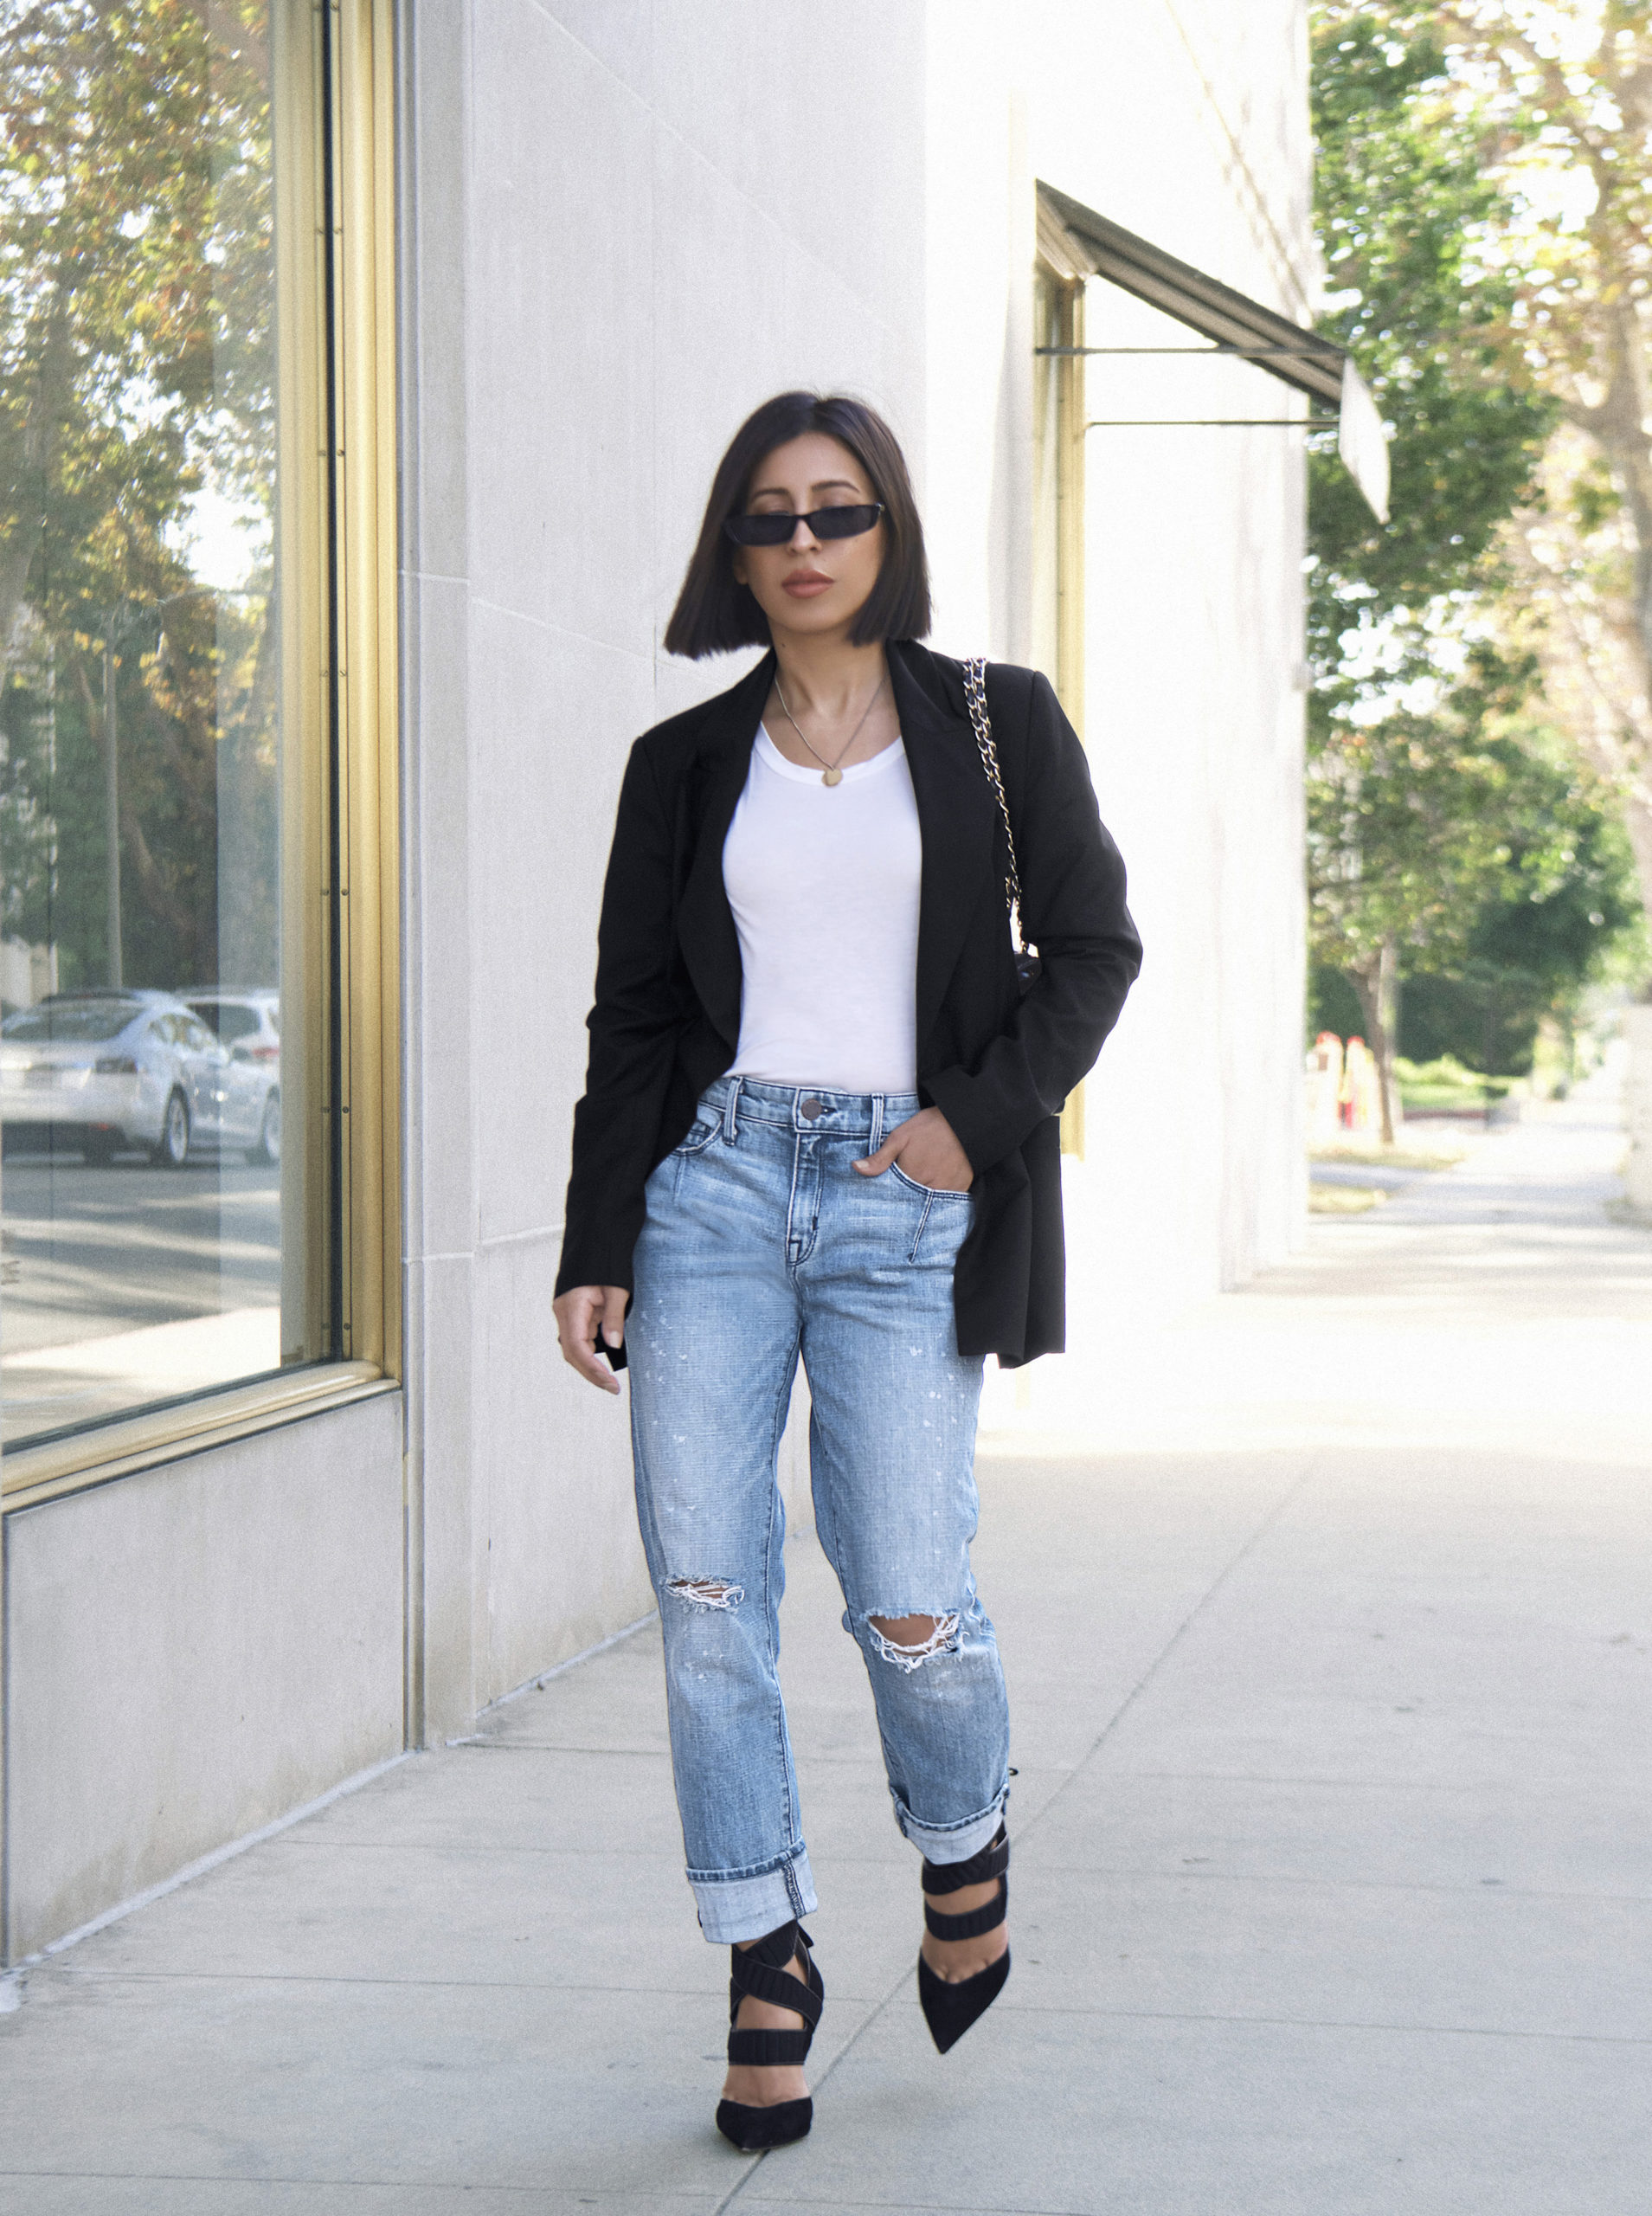 5 Stunning Ways To Style The Chicest Anti-Skinny Jeans For Spring – Summer 2021